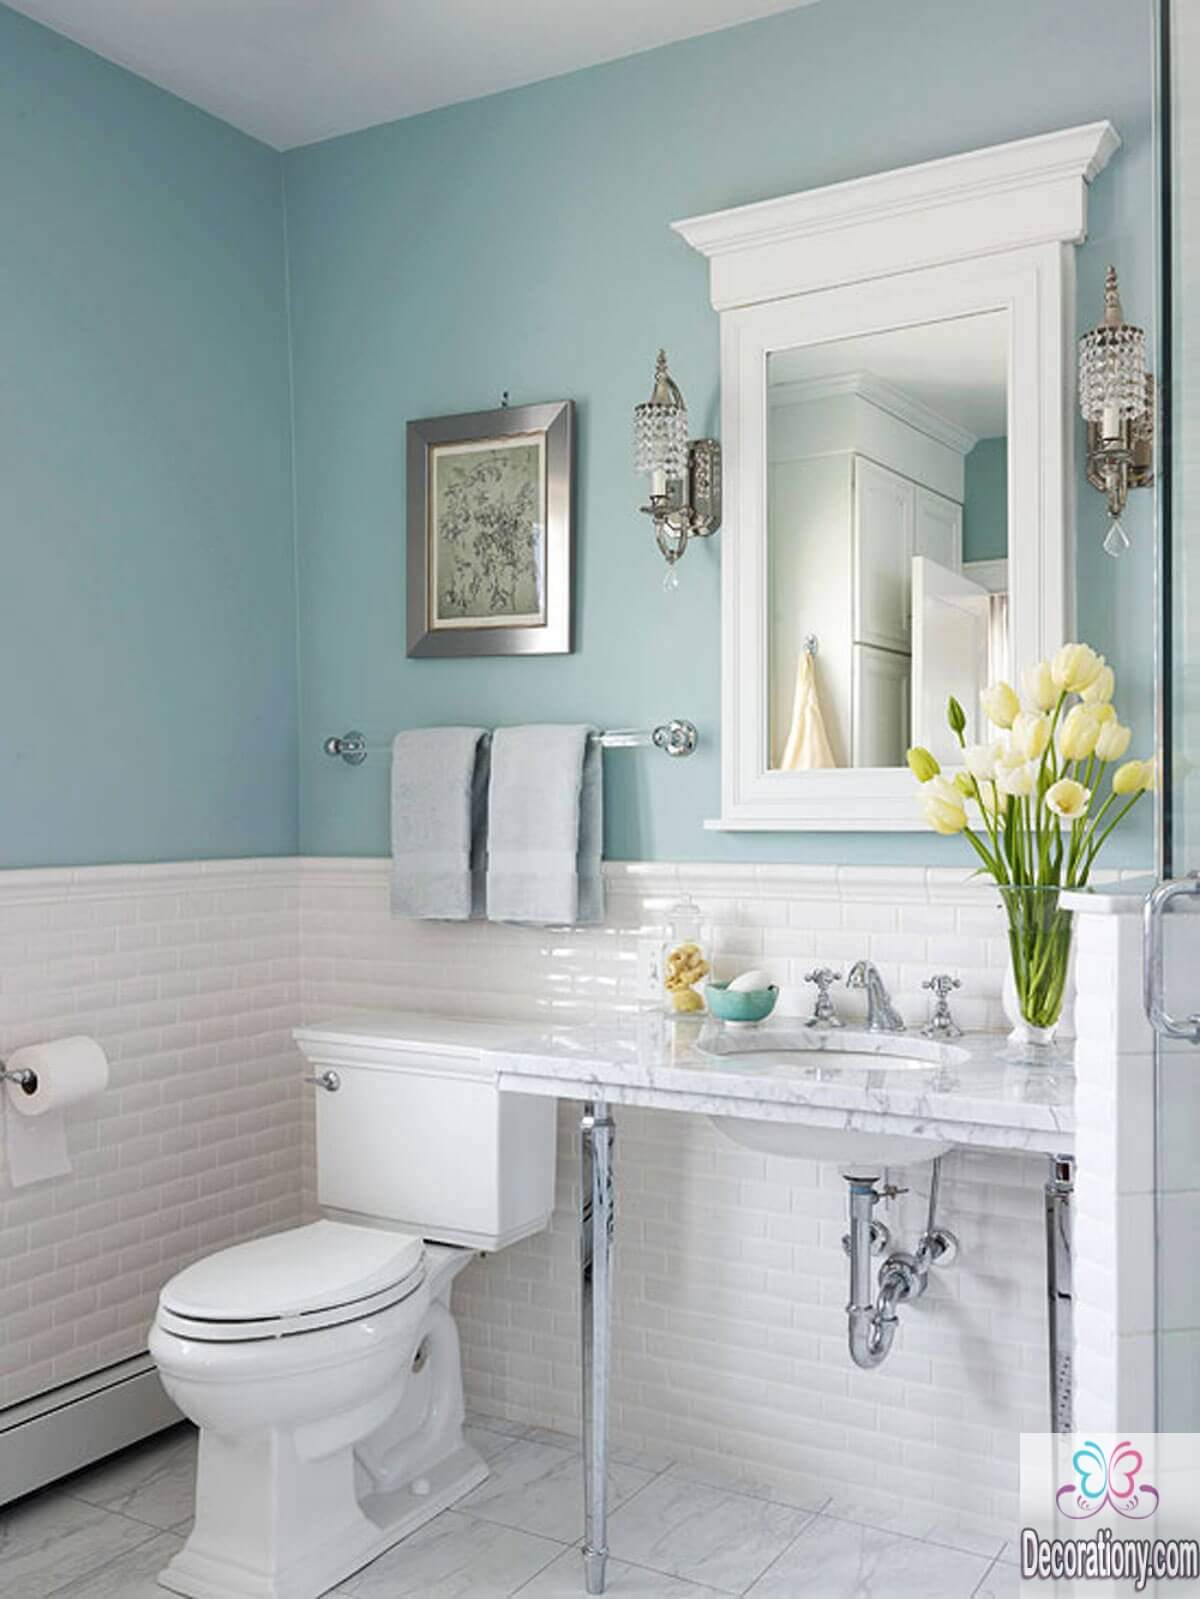 10 affordable colors for small bathrooms decoration y Tips for small bathrooms